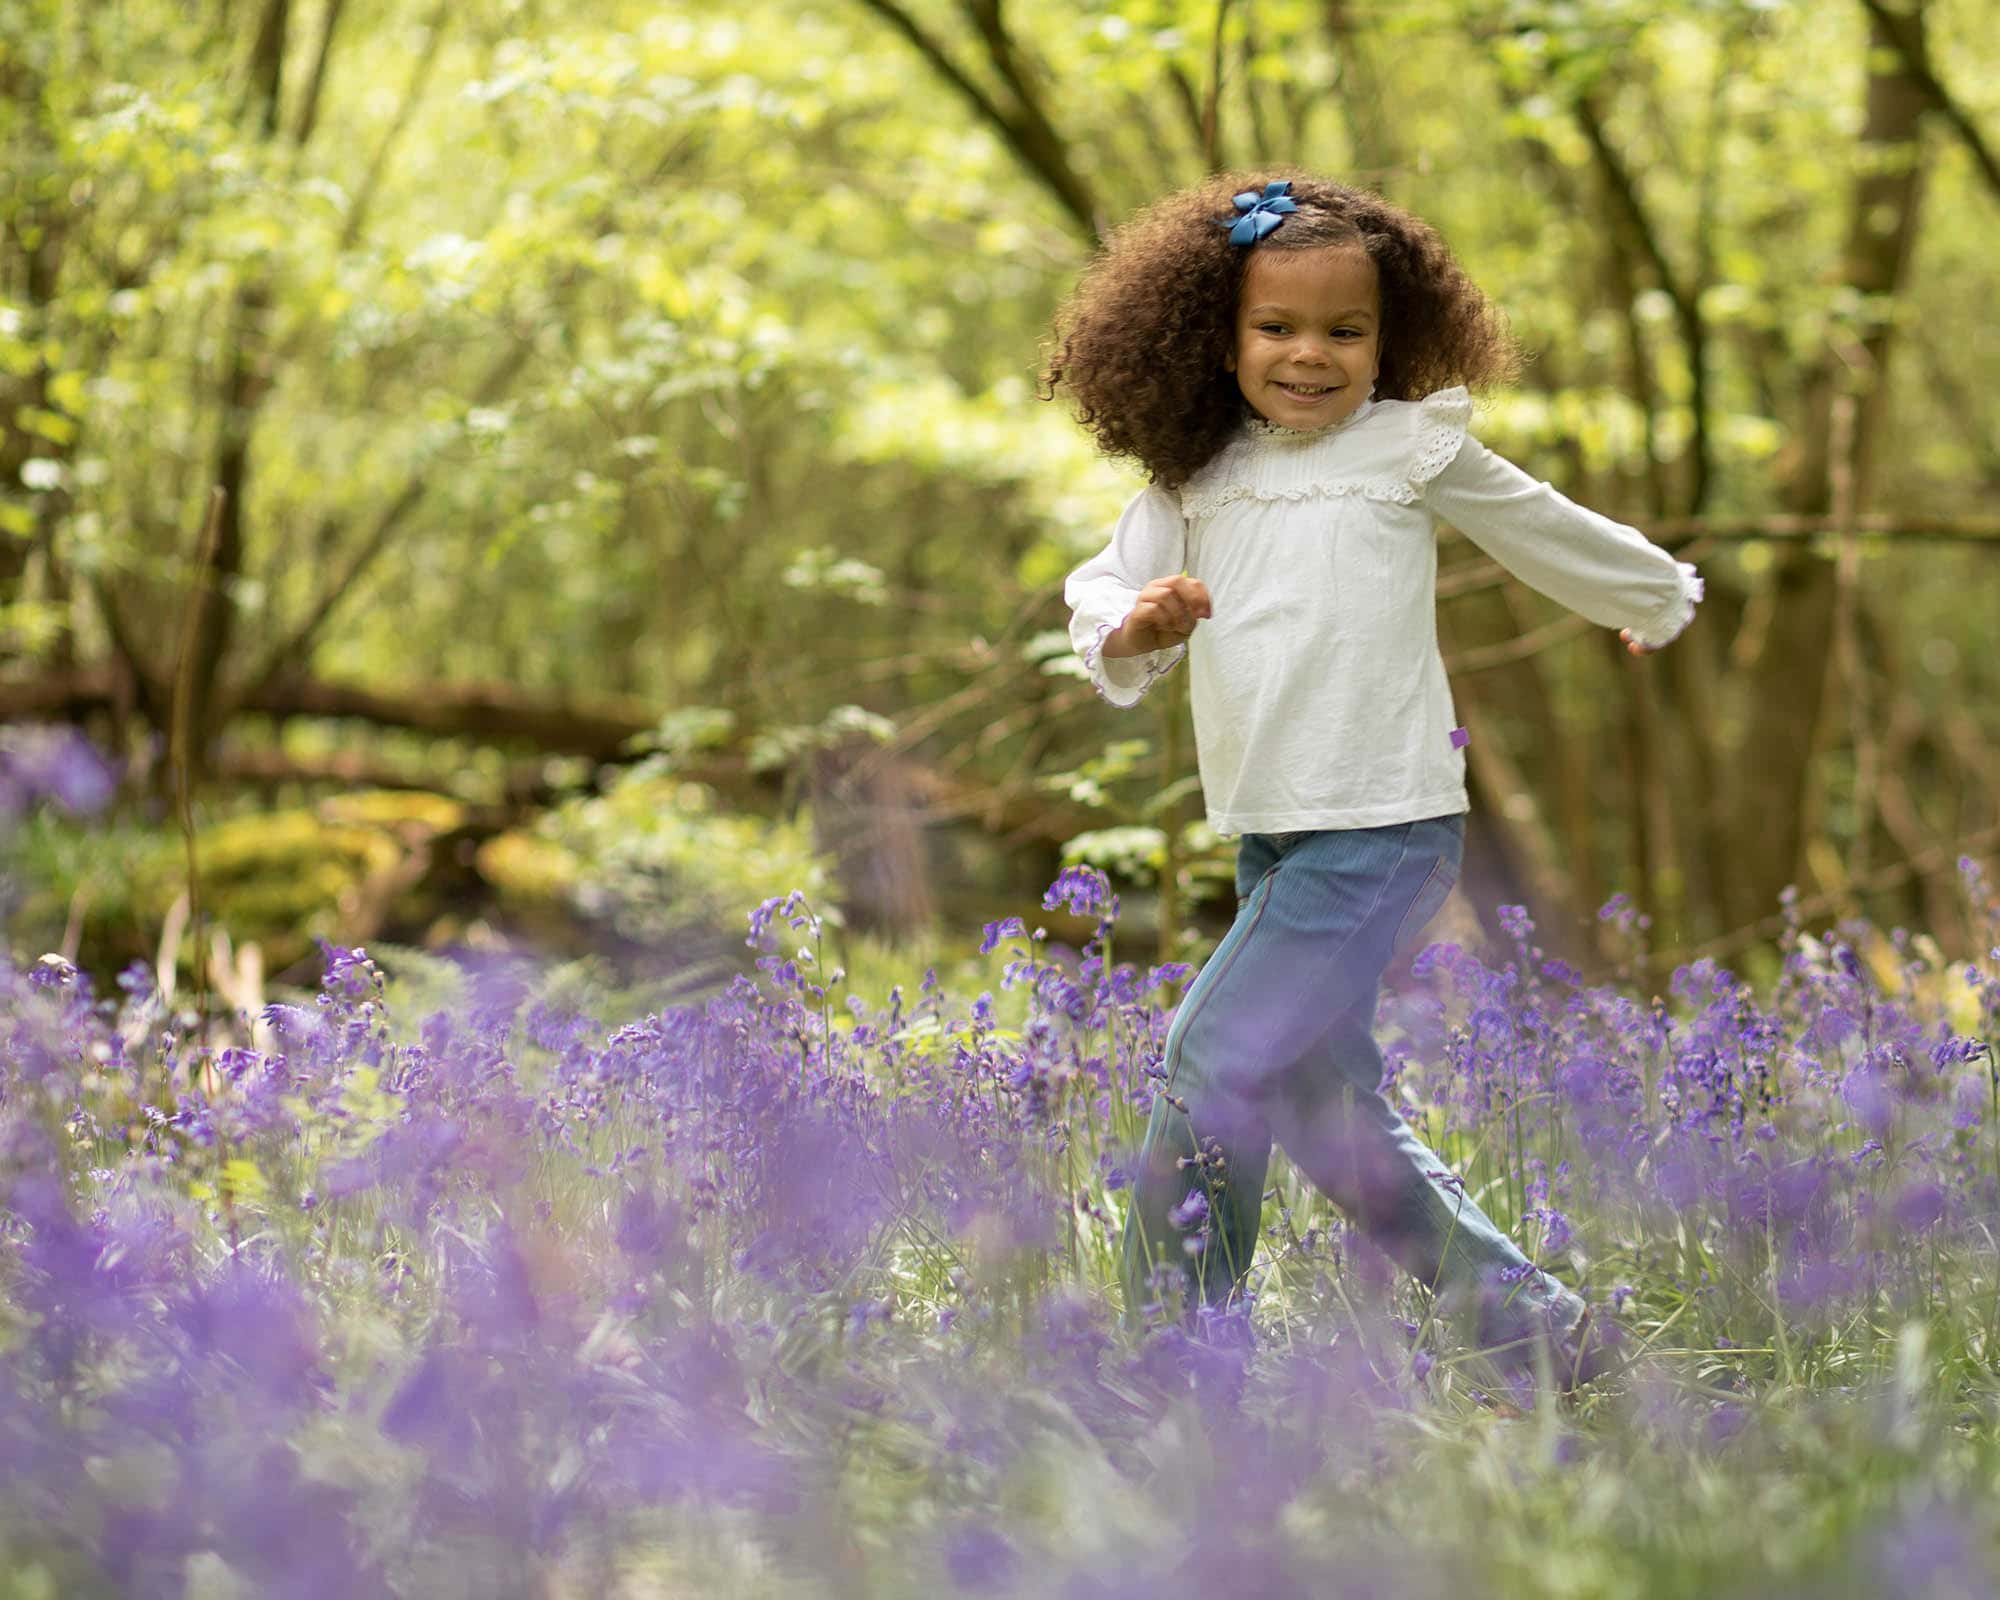 girl running in bluebells as part of a family bluebell photography session in Glasgow